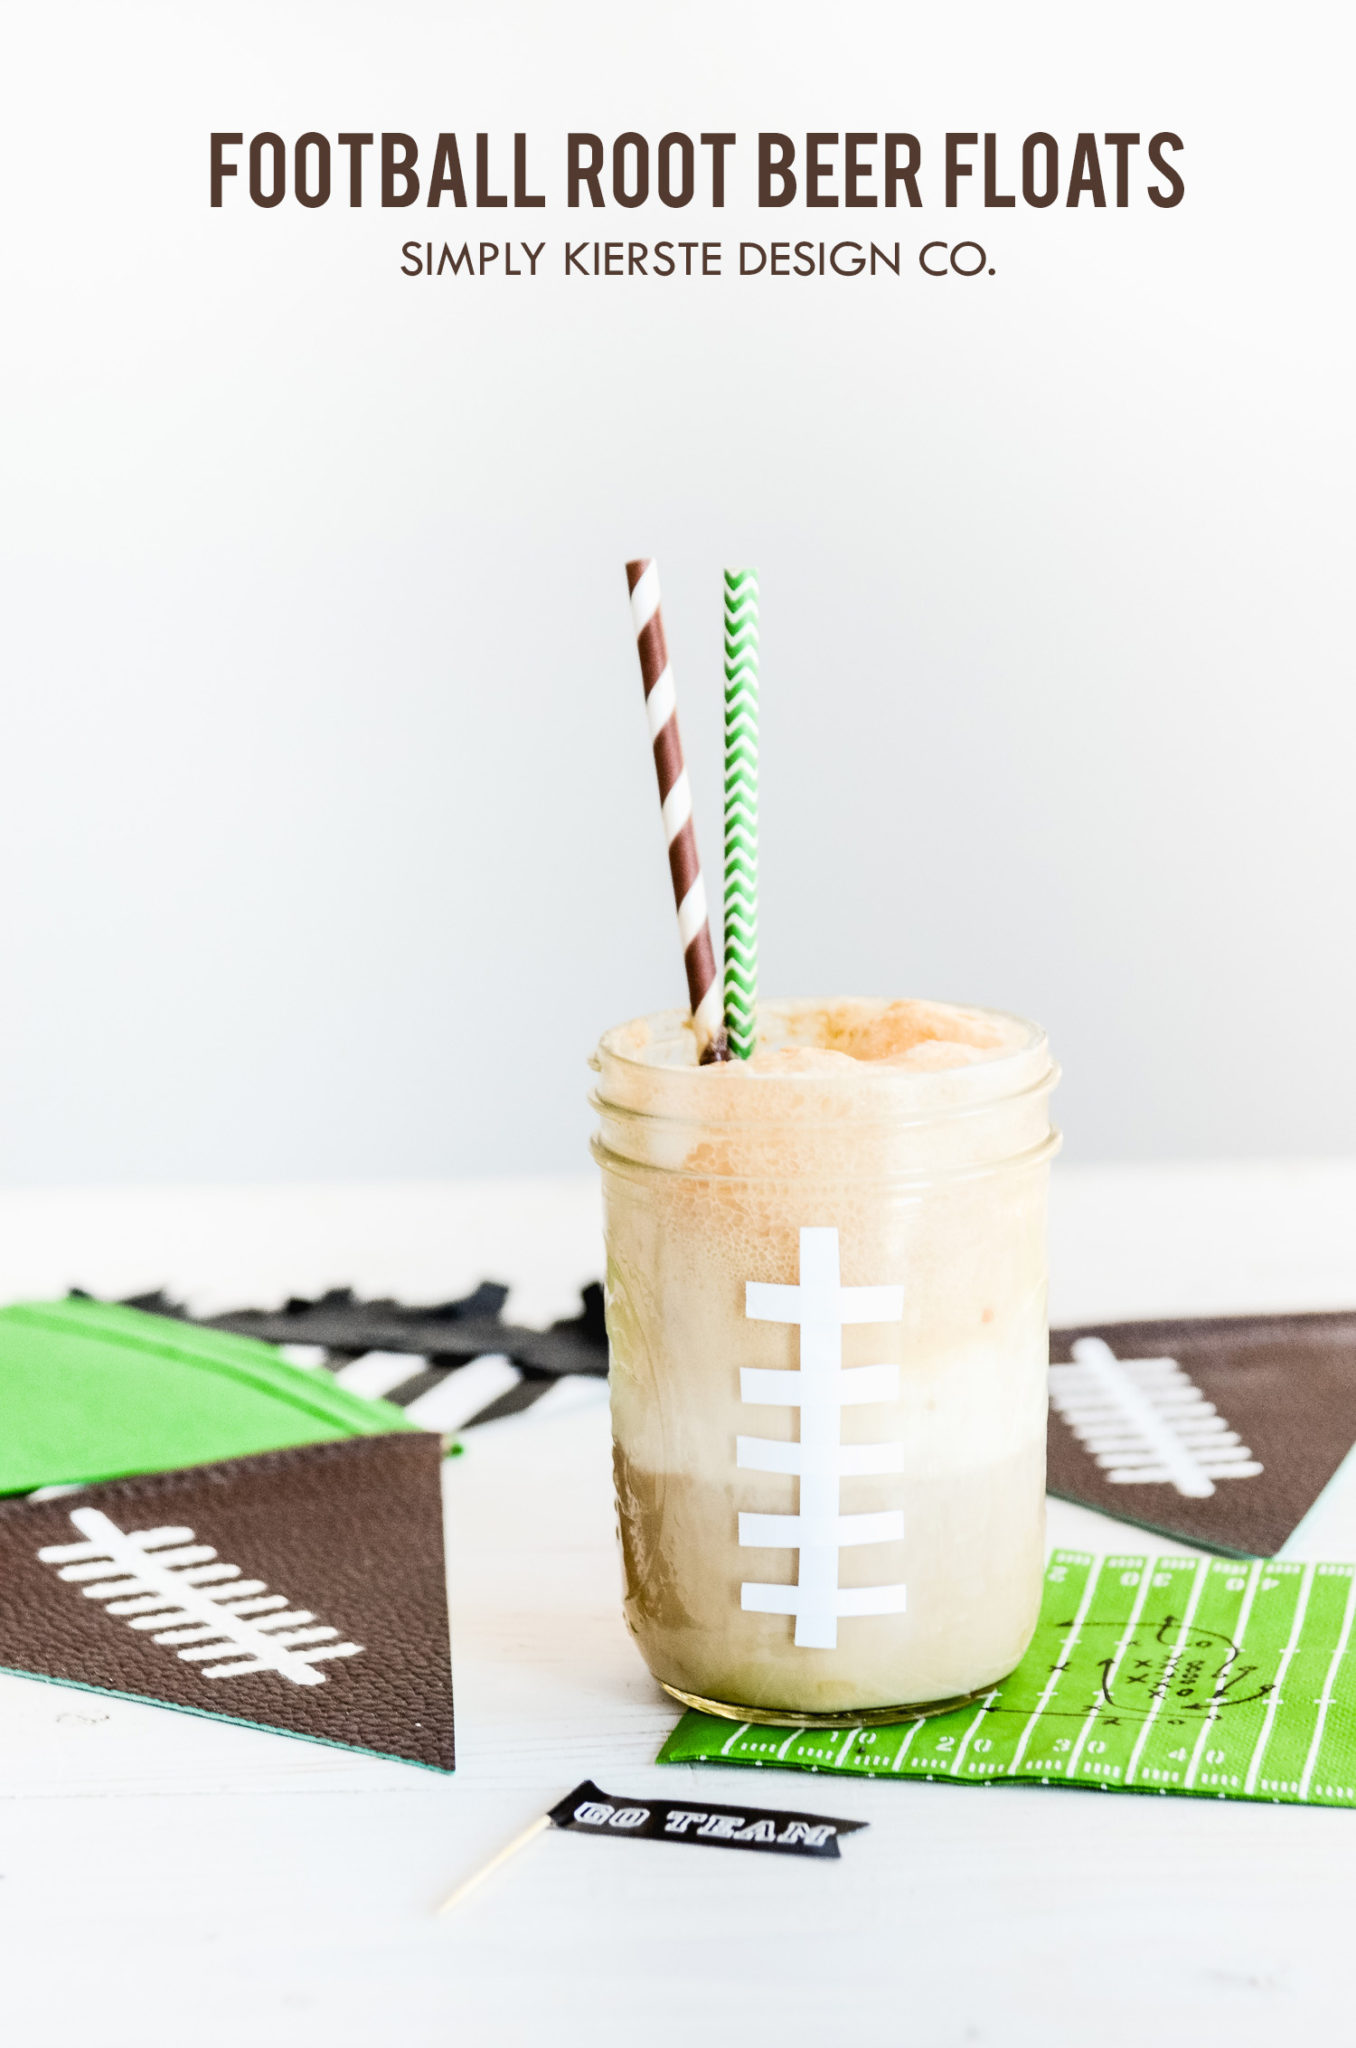 Football Root Beer Floats | Game Day Treats | oldsaltfarm.com #footballtreats #gamedayfood #masonjarideas #gamedayrecipes